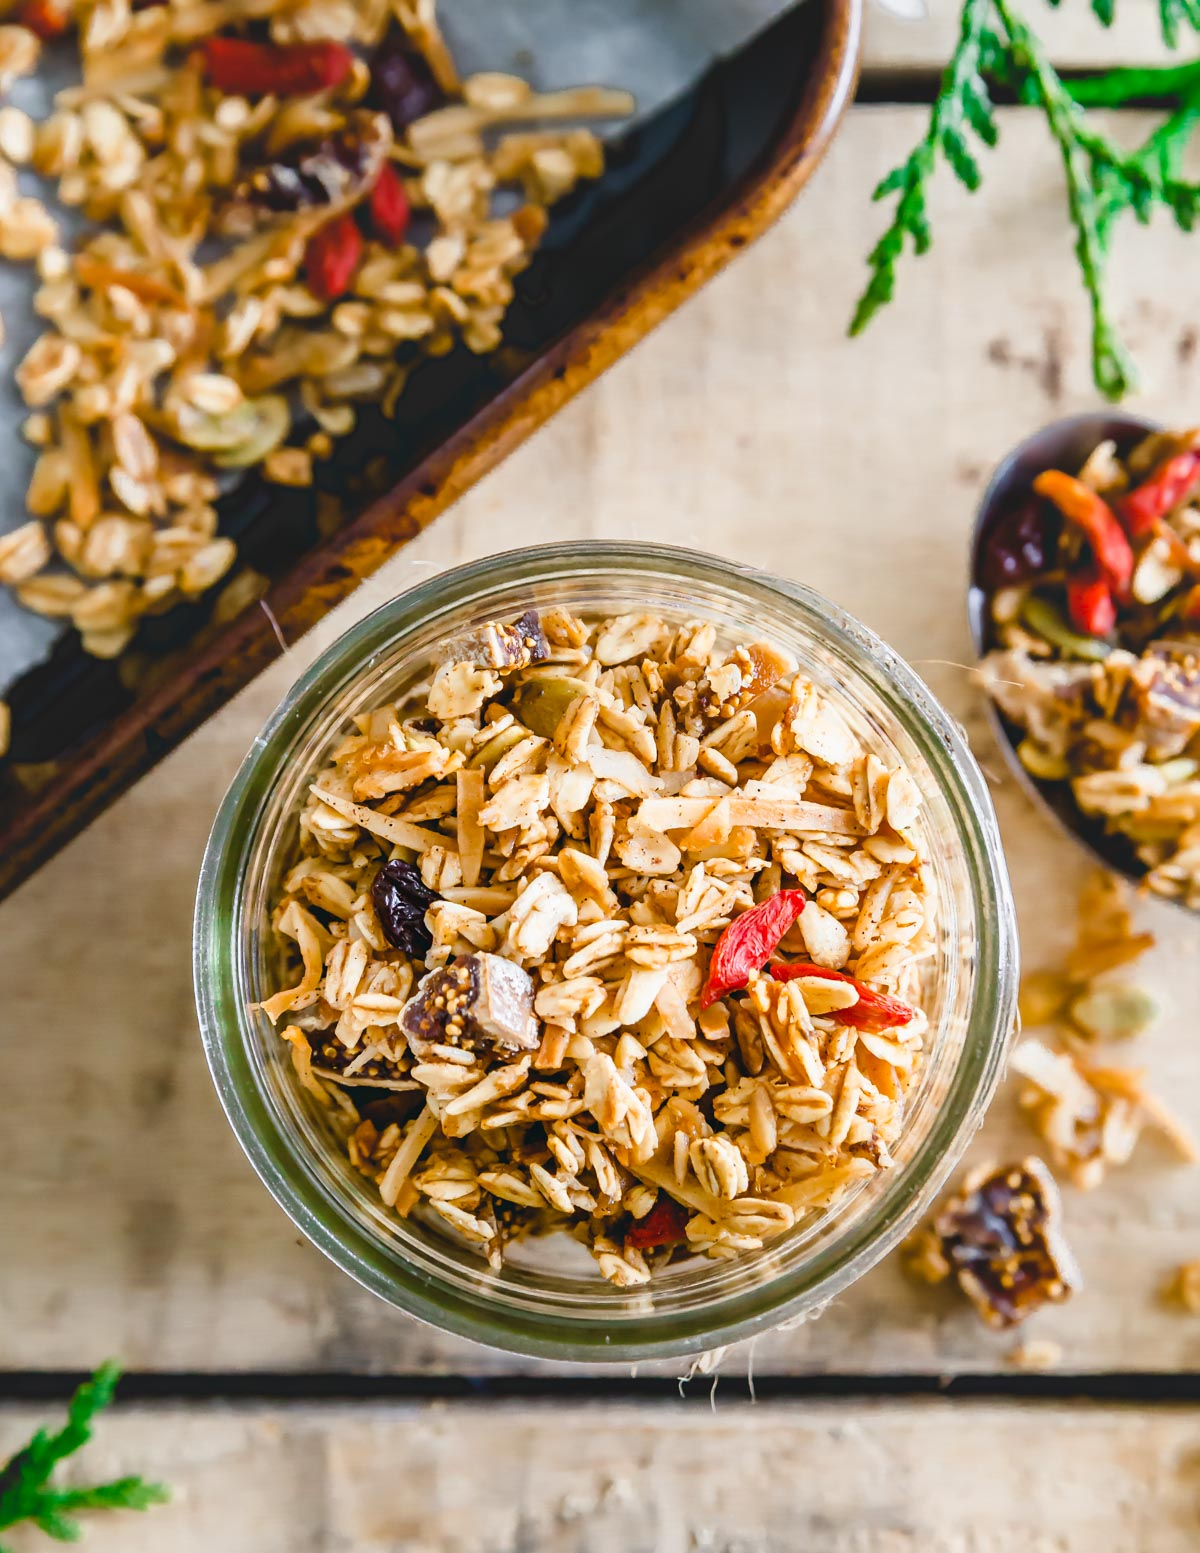 Tired of spending crazy money on expensive bags of store bought granola? Make this nut free granola recipe at home using your favorite dried fruit! It's gluten-free, vegan and nut-free so all dietary restrictions are accounted for.